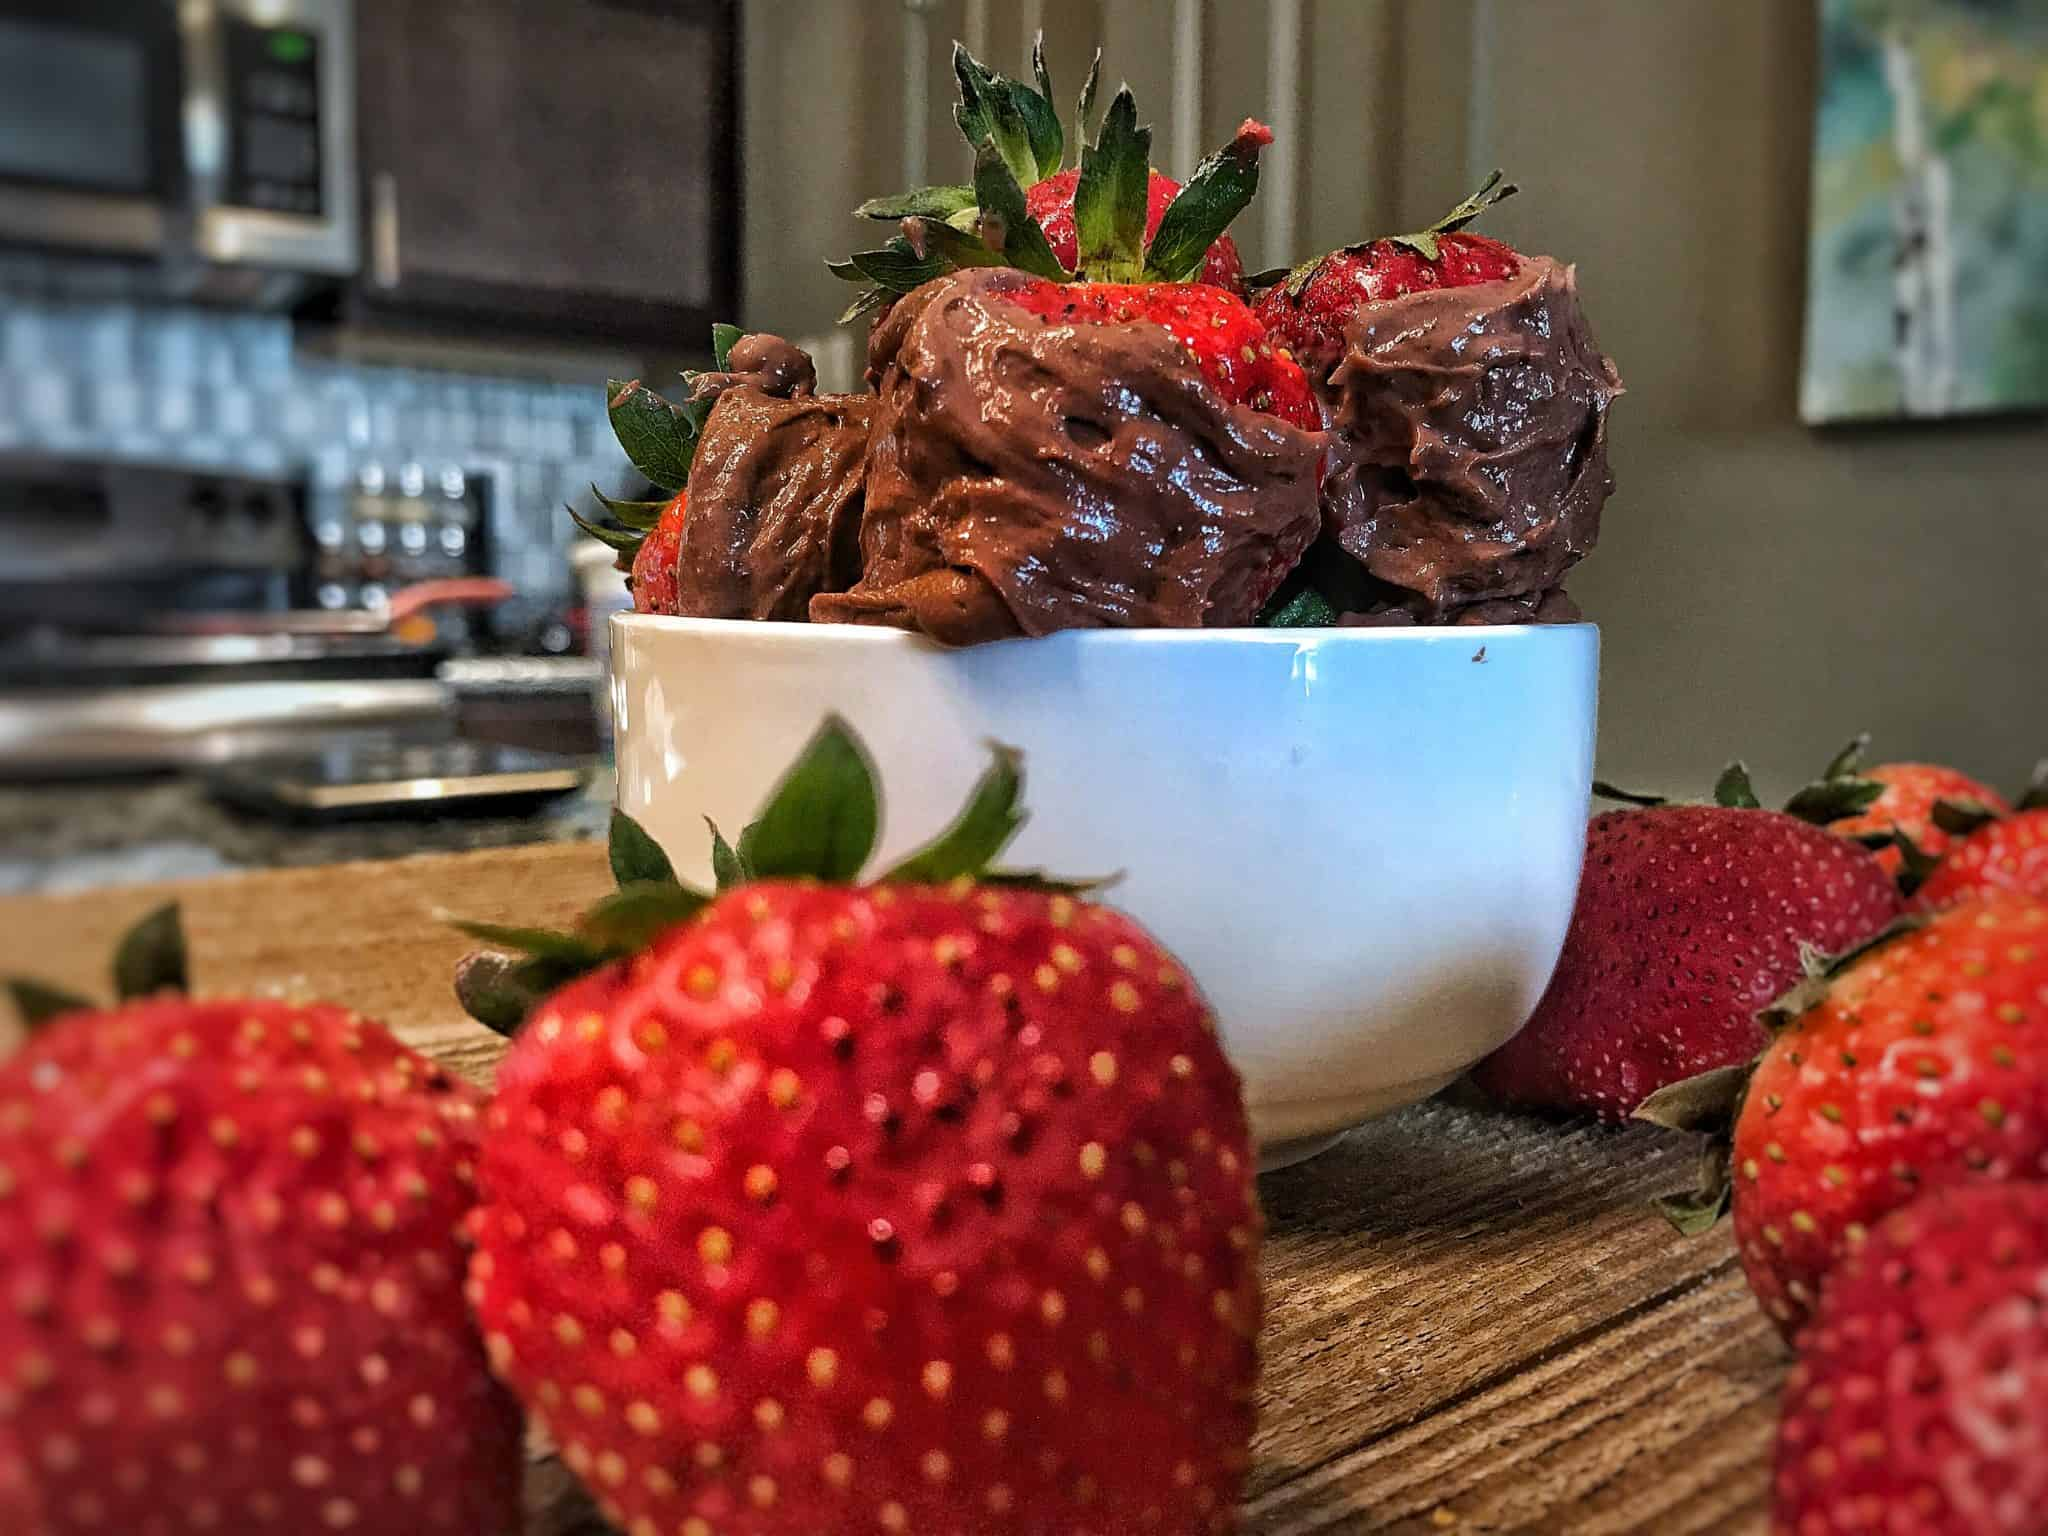 High Protein Chocolate Covered Strawberries Recipe